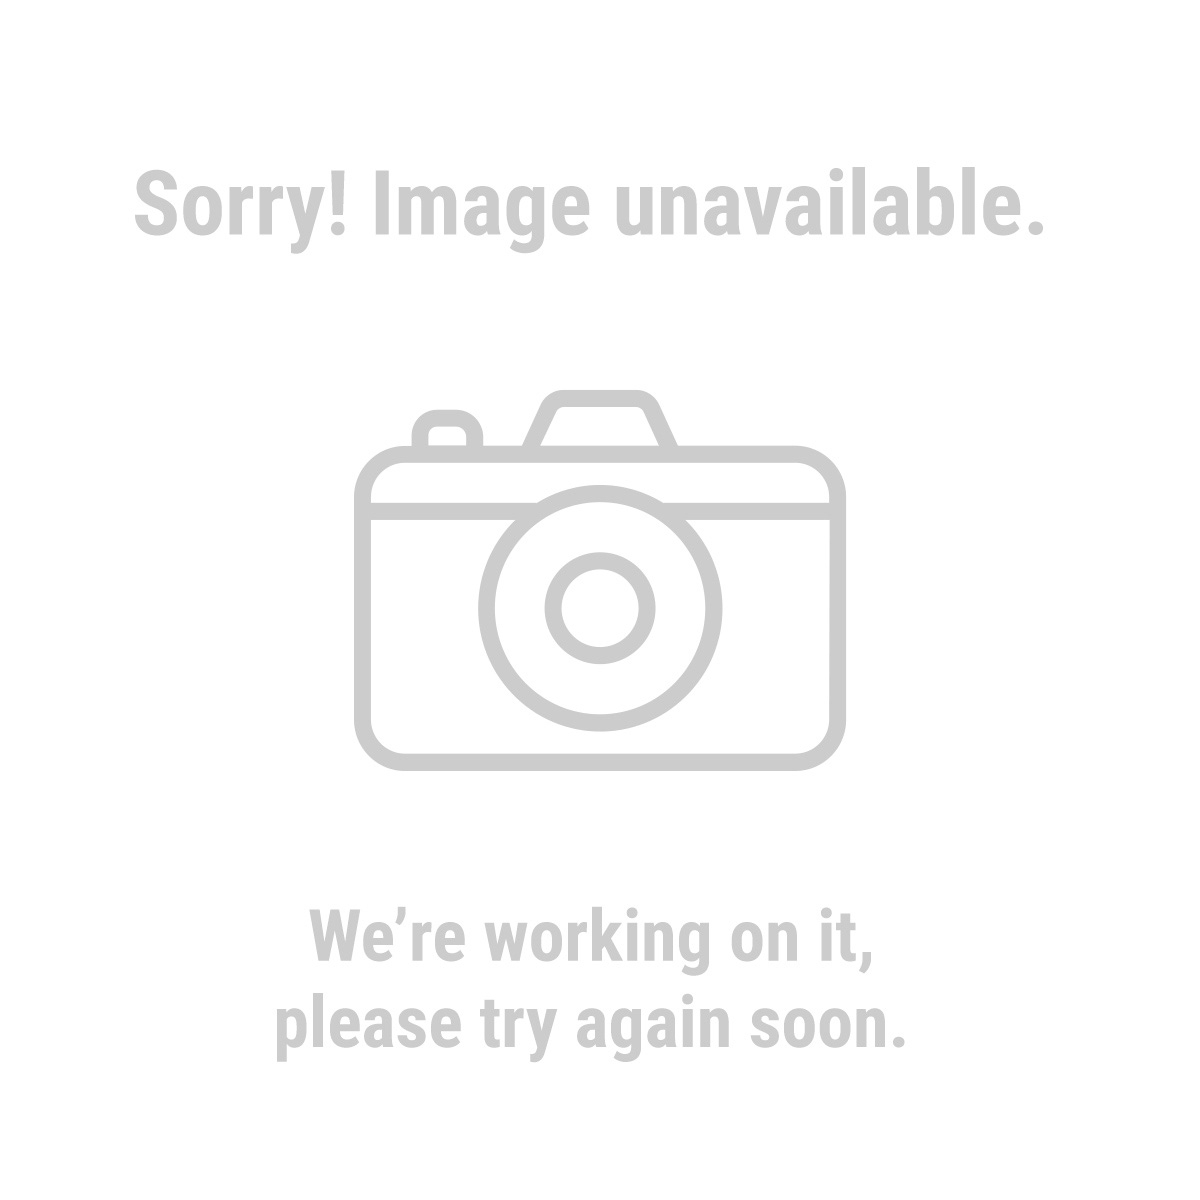 40691 Balsa Wood Airplane Puzzle